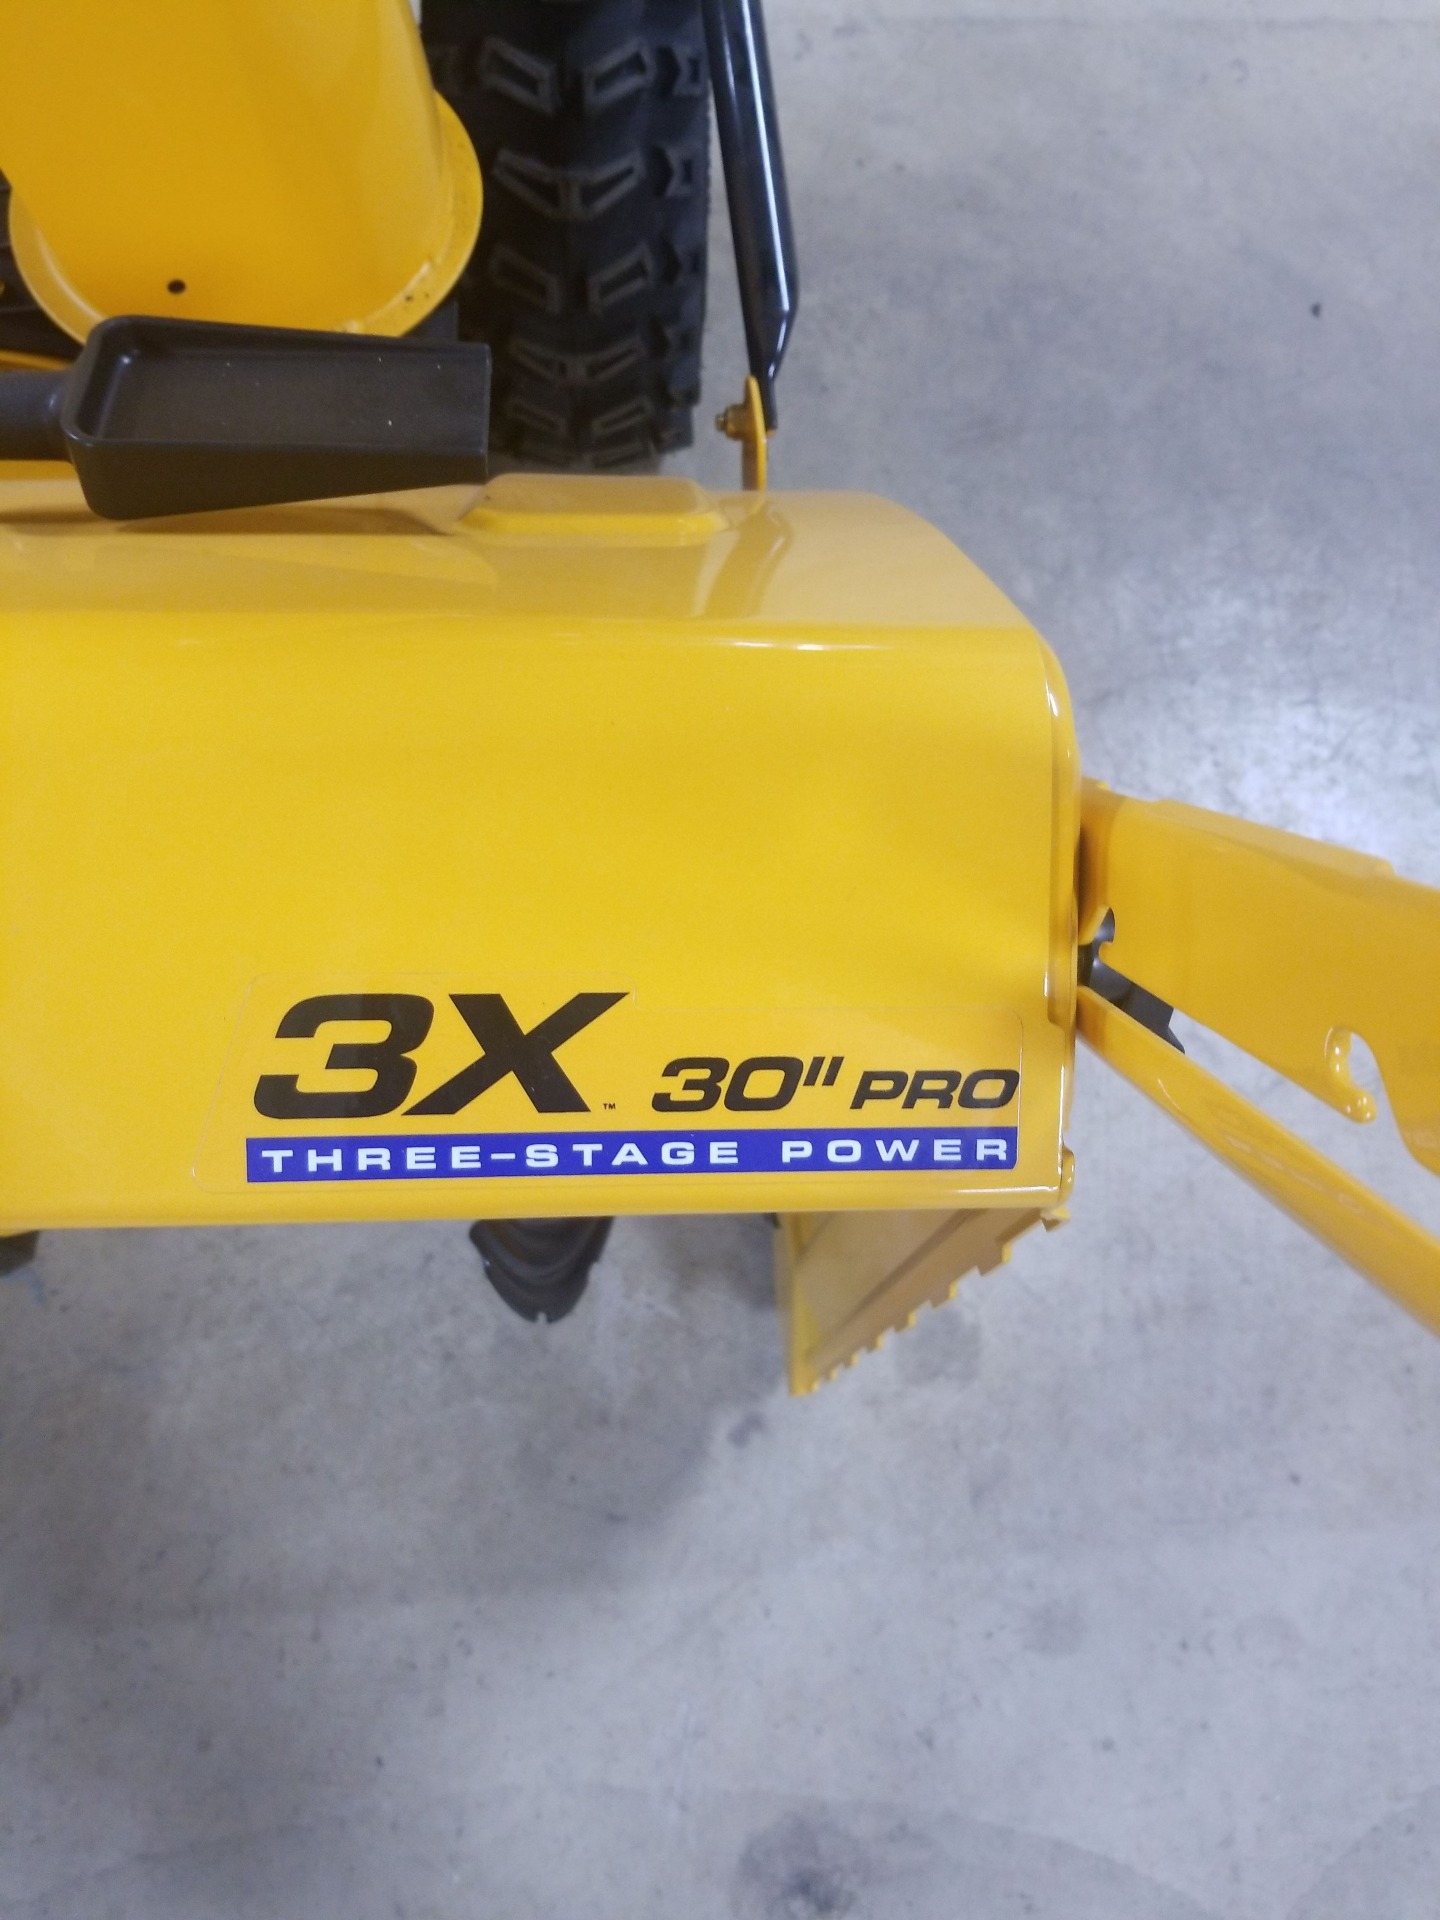 Cub Cadet 2X 30 PRO in Berlin, Wisconsin - Photo 4